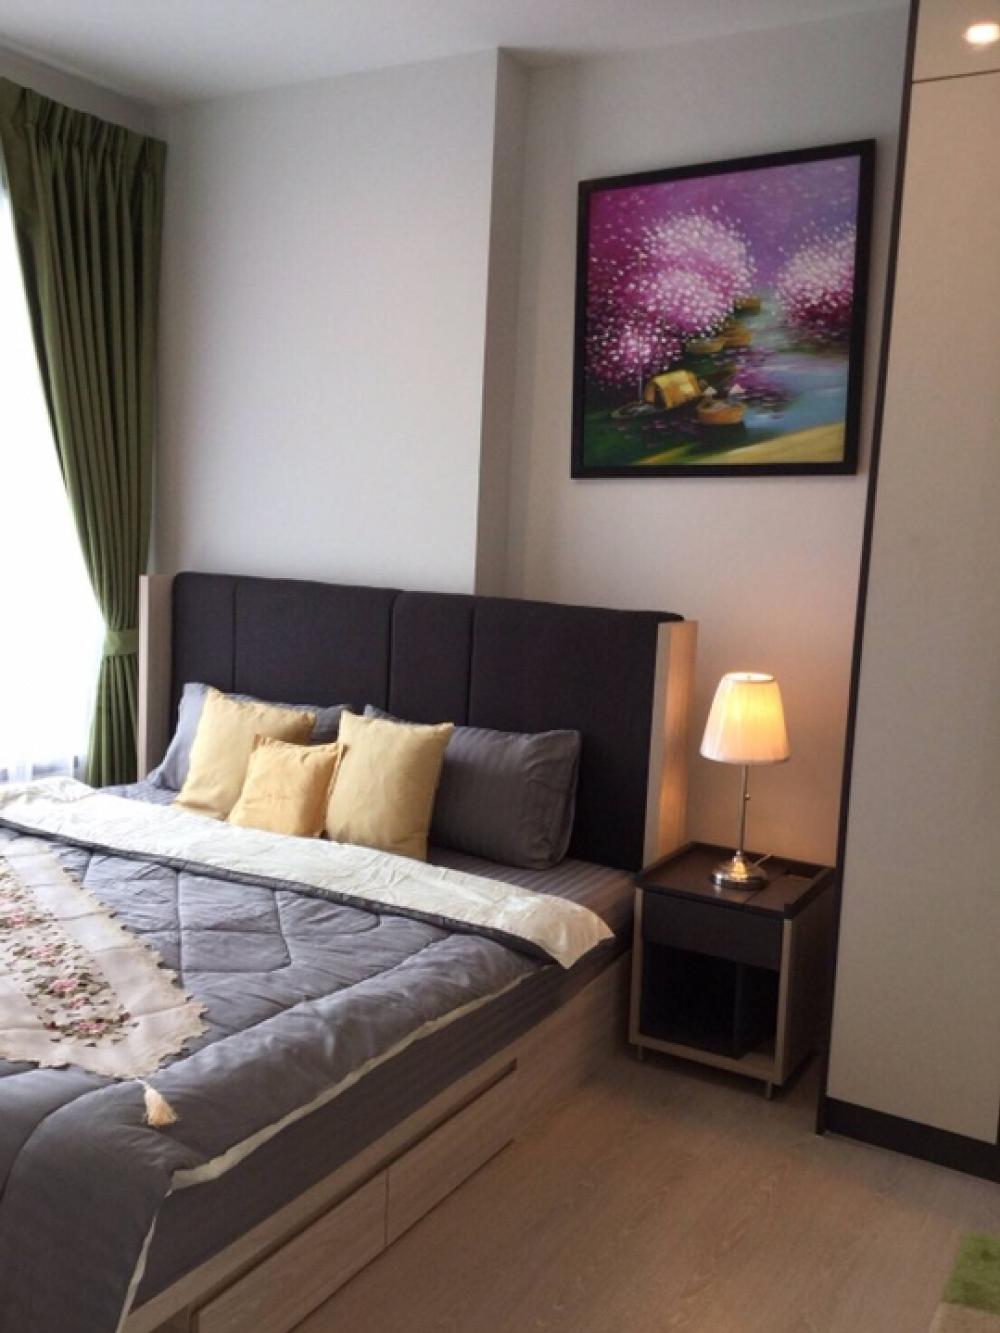 For RentCondoRama9, RCA, Petchaburi : Condo For Rent – The Niche Pride Thonglor-Phetchaburi Price : 17,000 Baht/month Floor : 9 Room Type : 1 Bedroom 1 Bathroom Room Size : 36 sq.m.